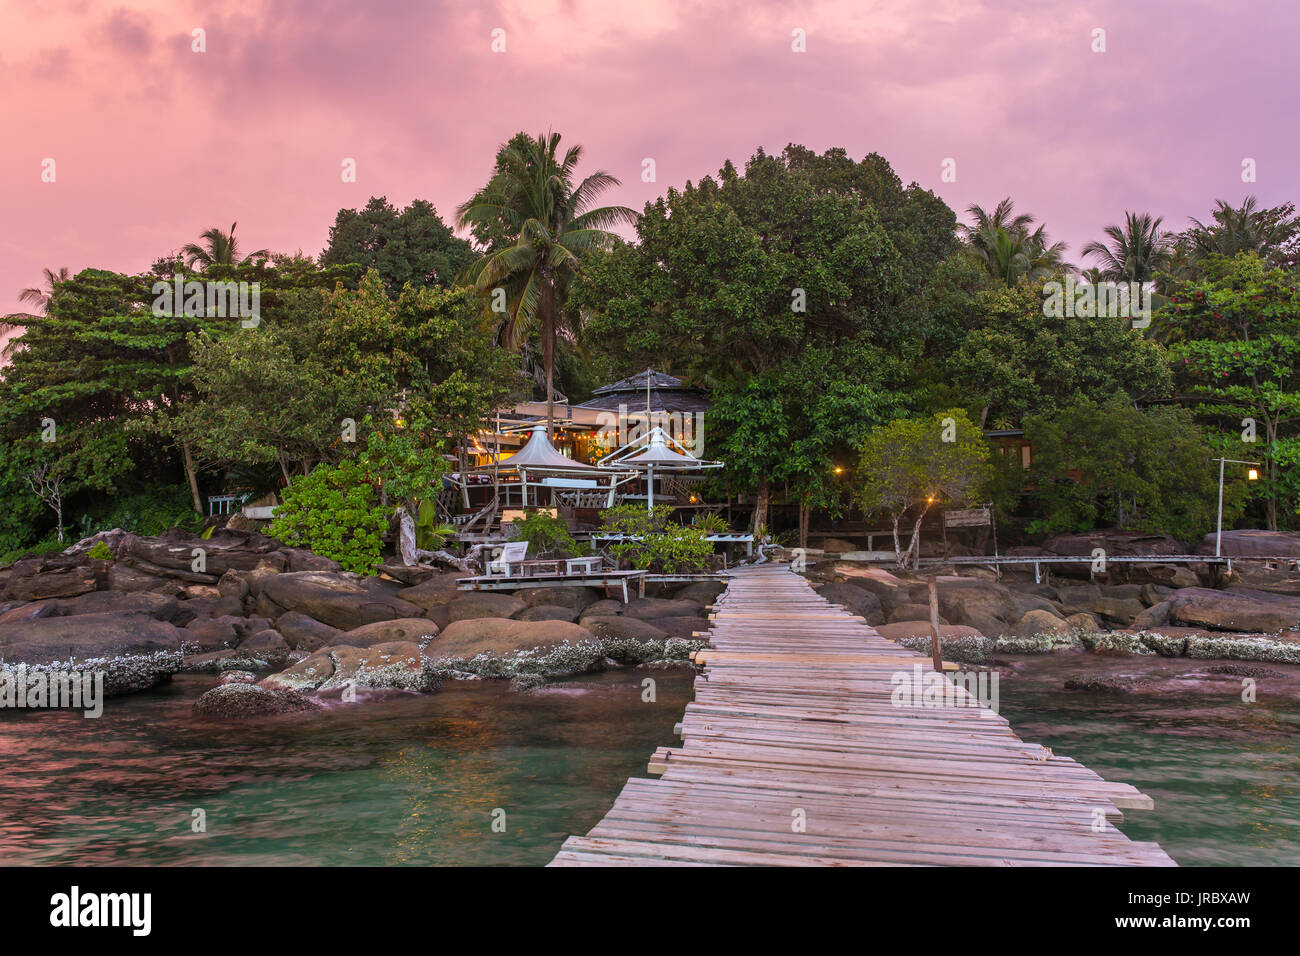 Wooden pier to a tropical island resort on Koh Kood island during sunset, Thailand. - Stock Image